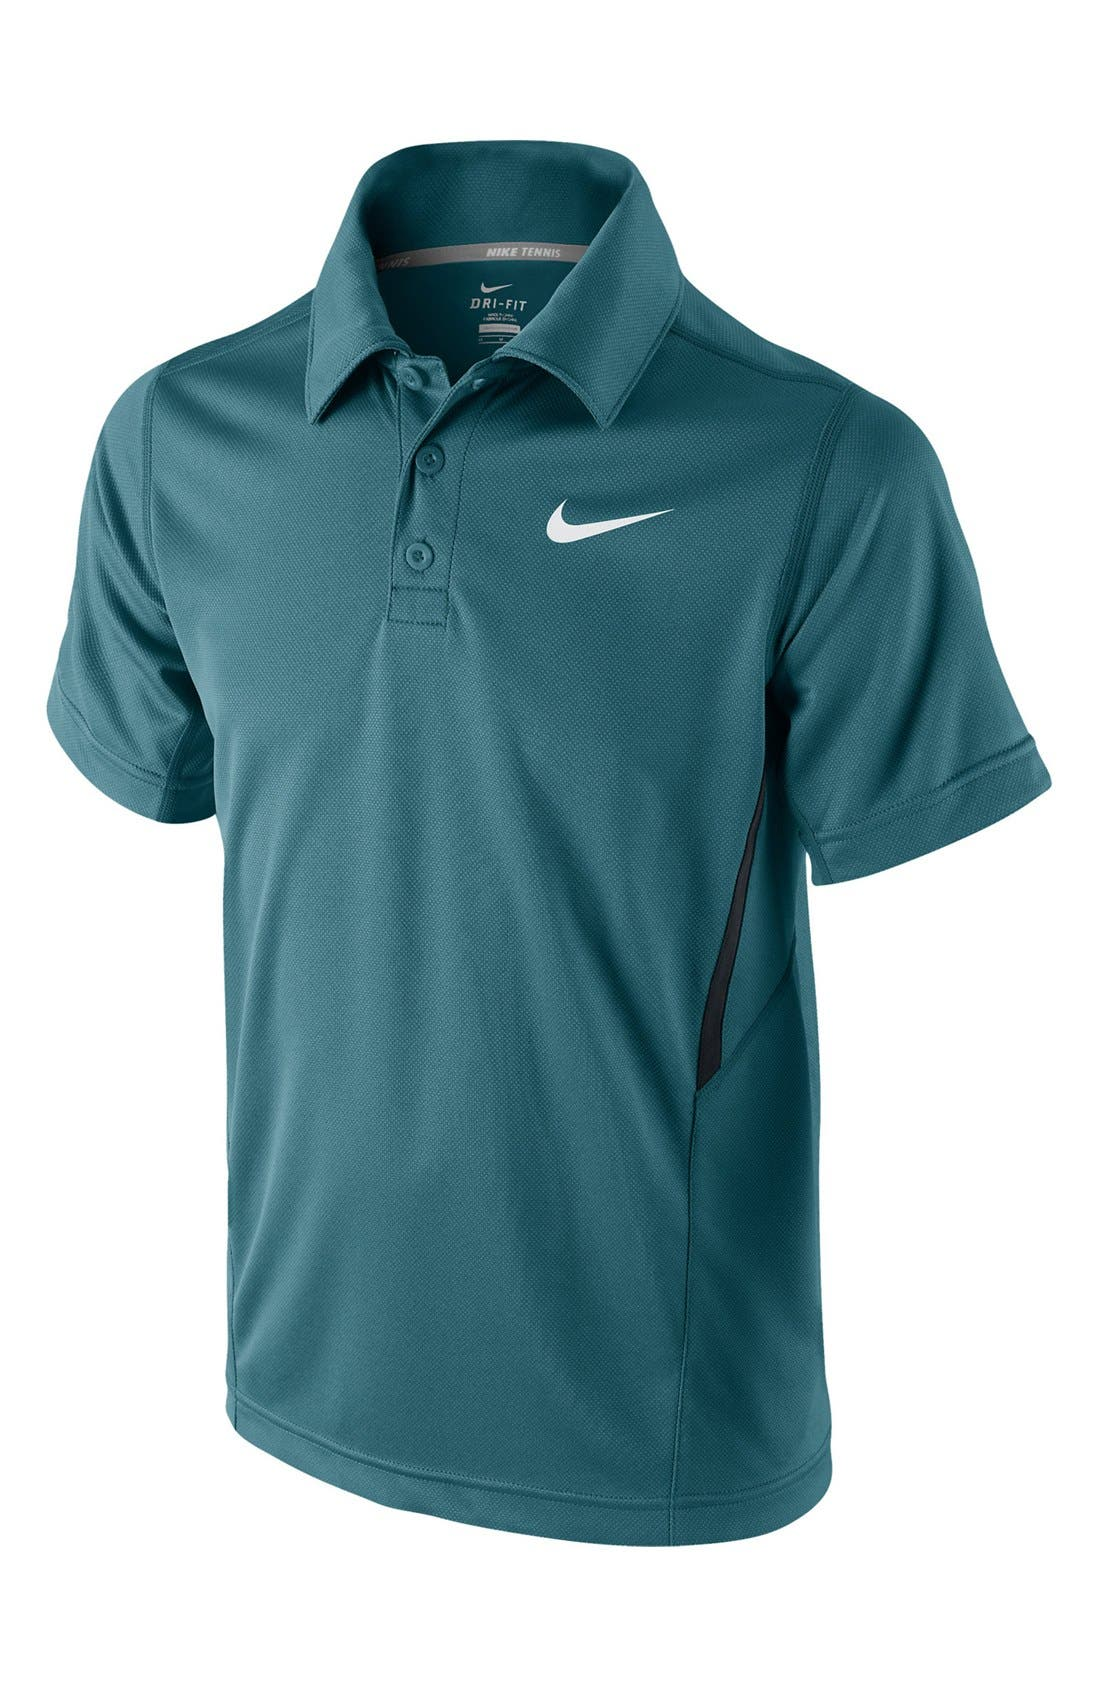 Alternate Image 1 Selected - Nike 'Boarder' Tennis Polo (Big Boys)